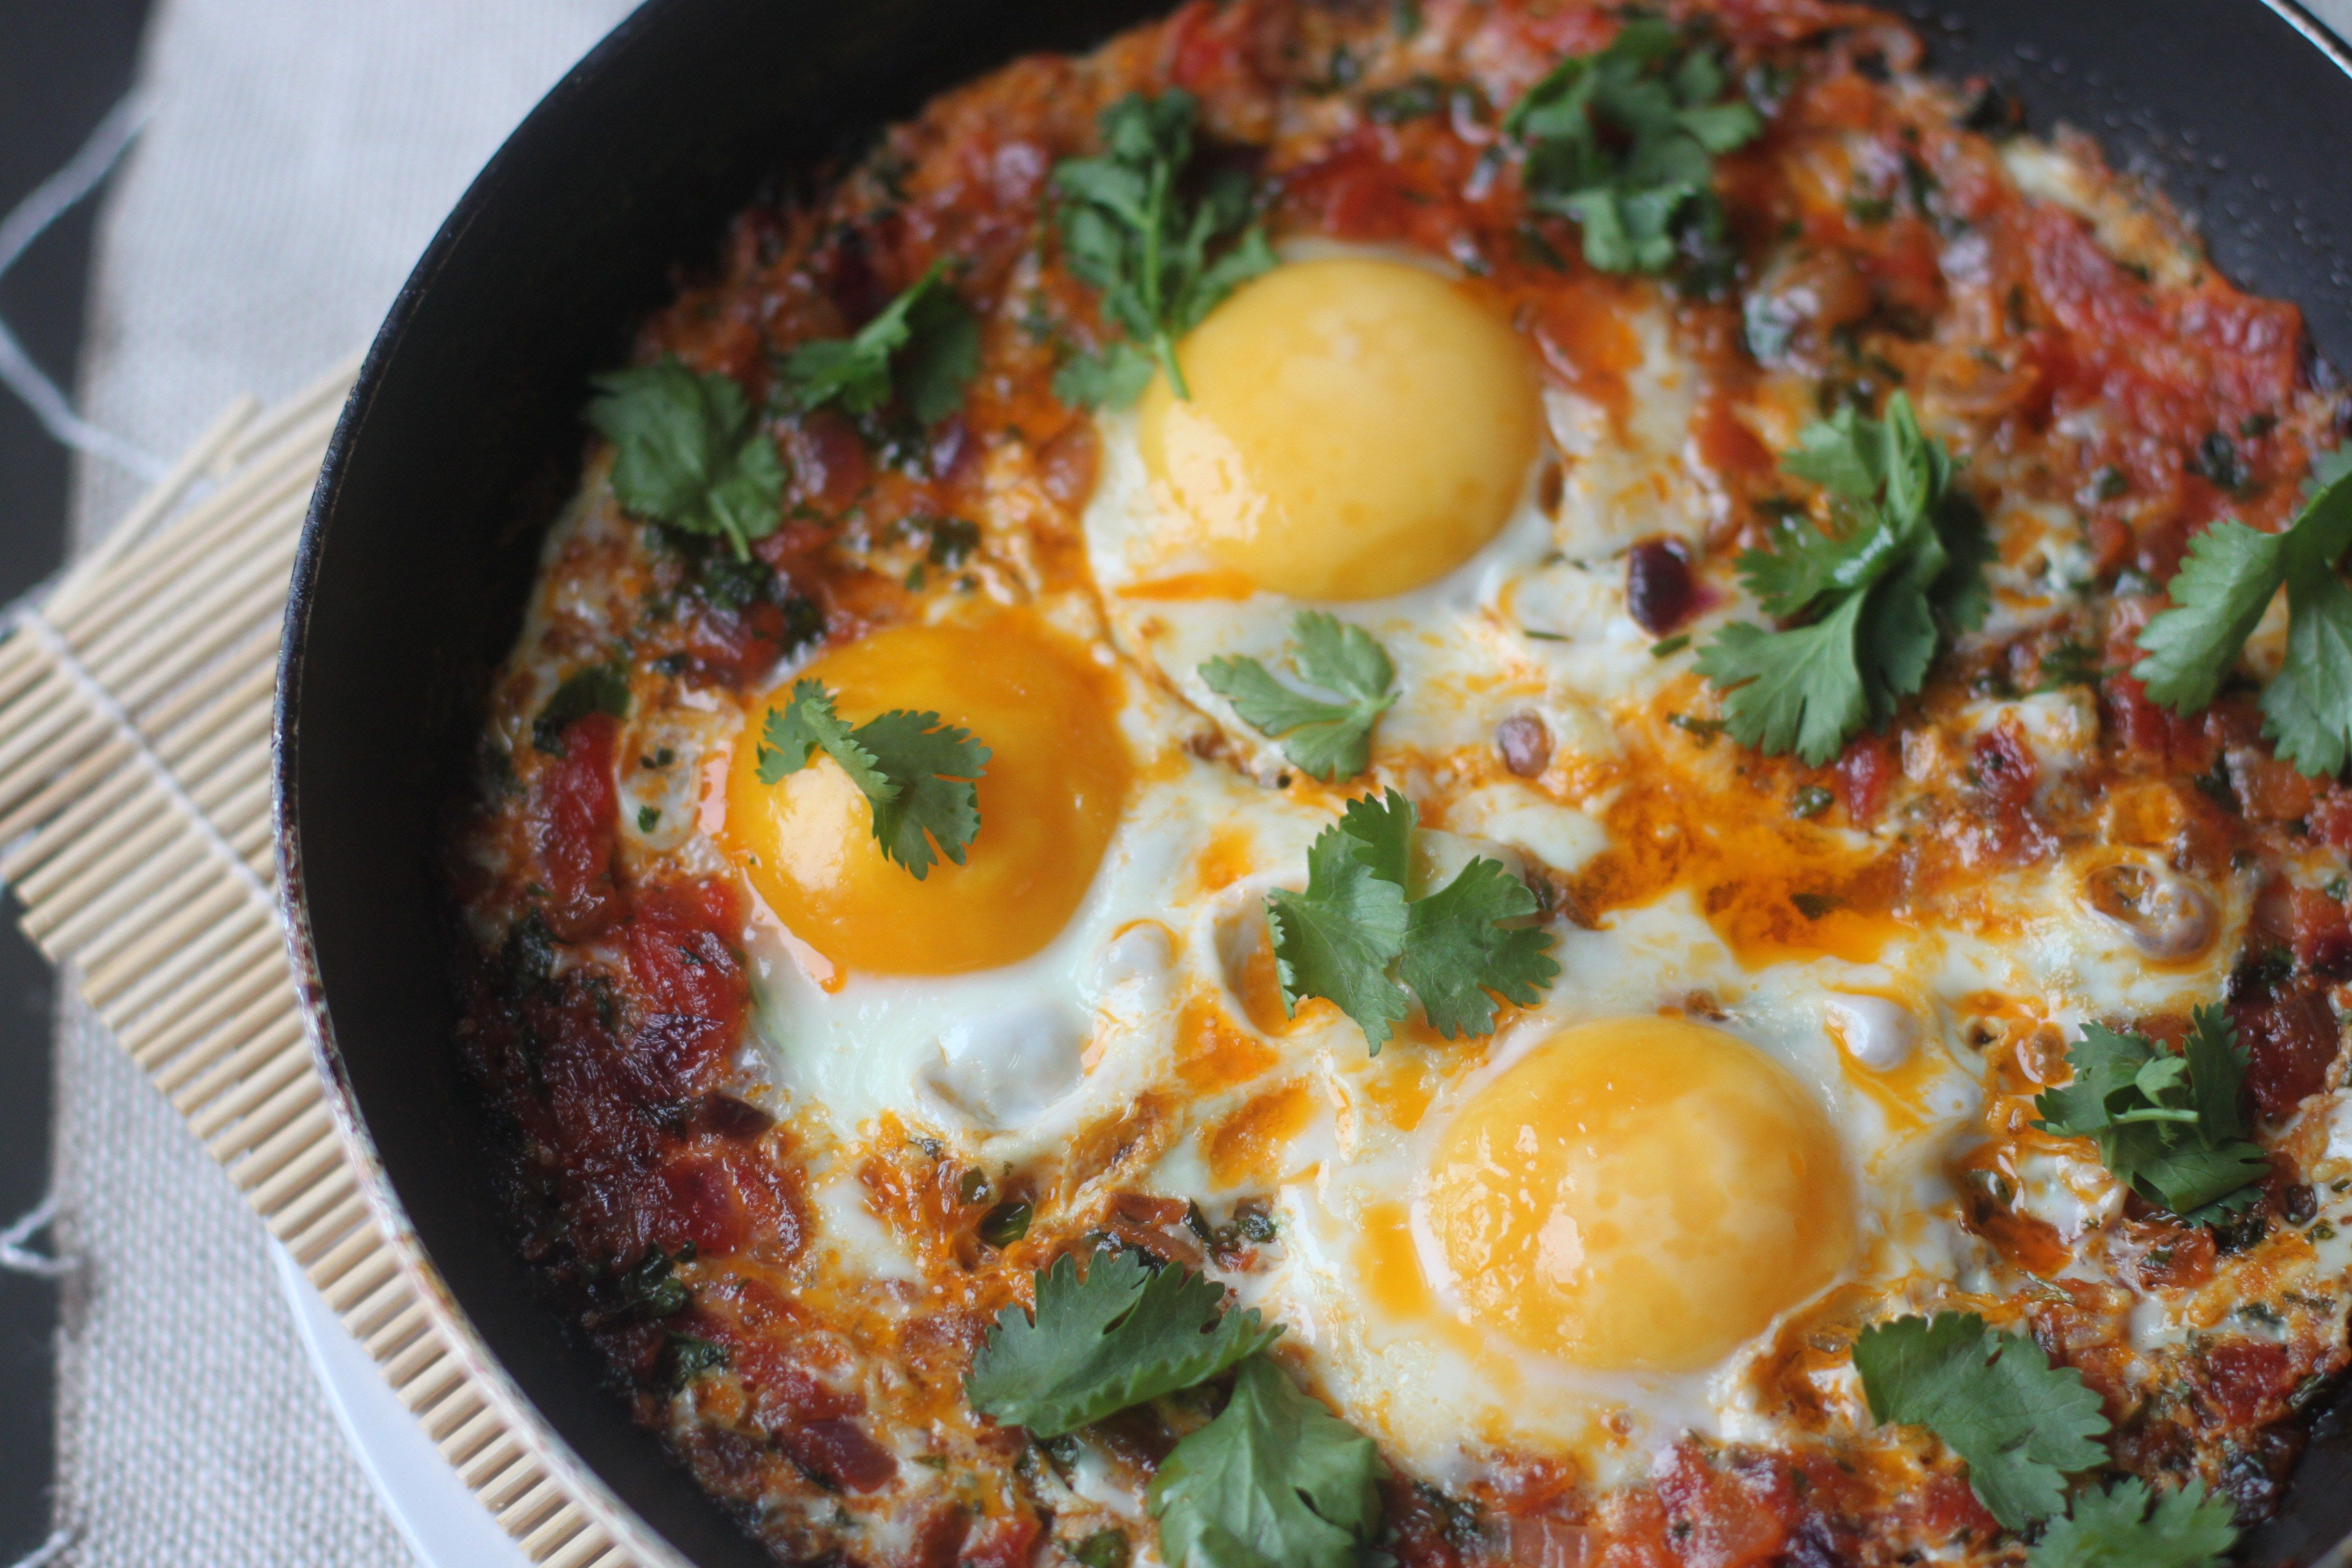 Algerian chakchouka north african eggs pouched in a tomato sauce nigerian food recipes algerian chakchouka north african eggs pouched in a tomato sauce forumfinder Image collections